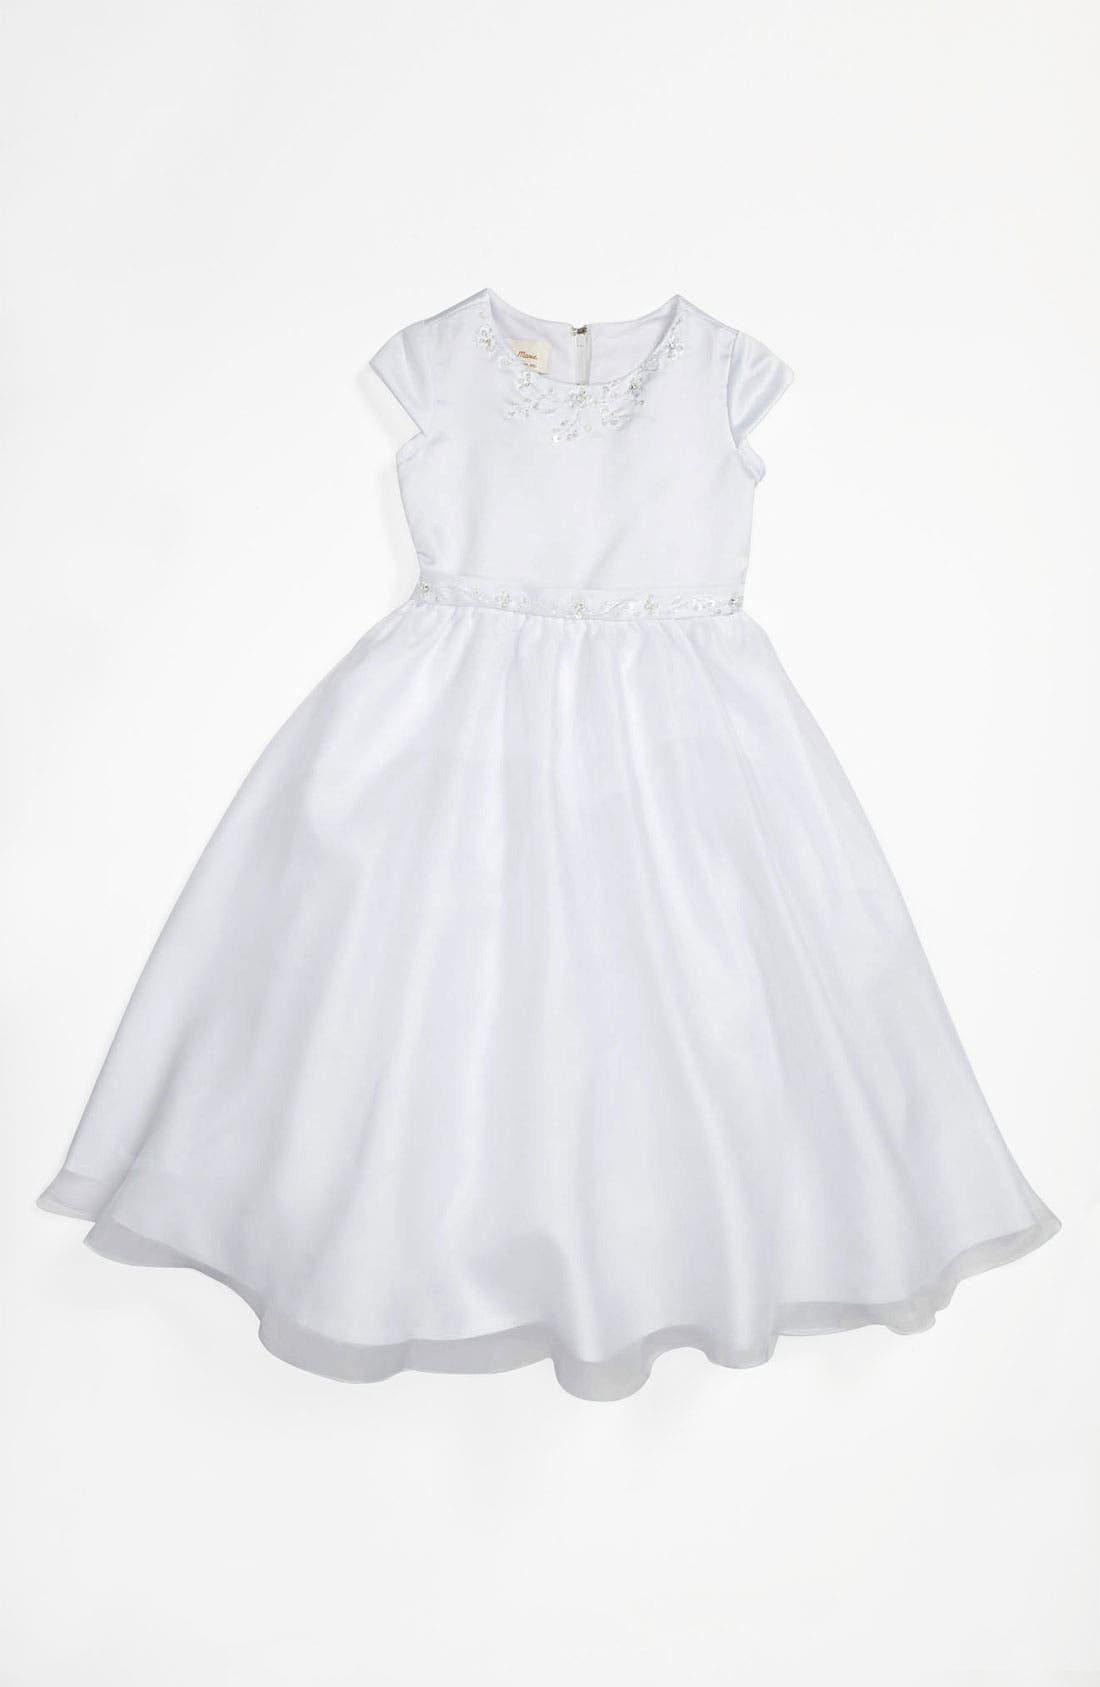 Alternate Image 1 Selected - Lauren Marie Beaded Dress (Little Girls & Big Girls)